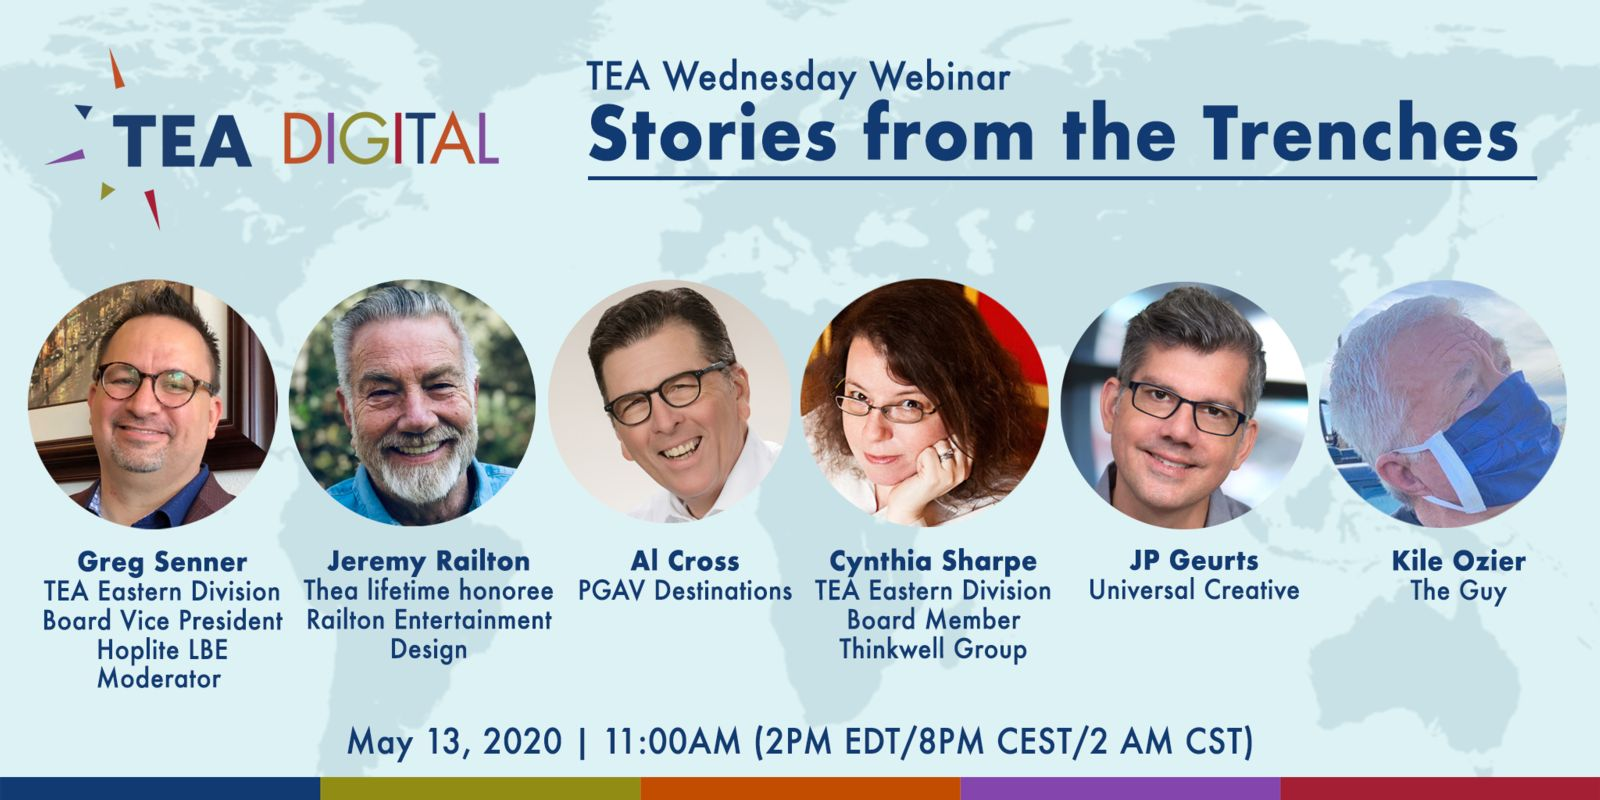 Stories from the Trenches: Greg Senner reports on the May 13 TEA webinar